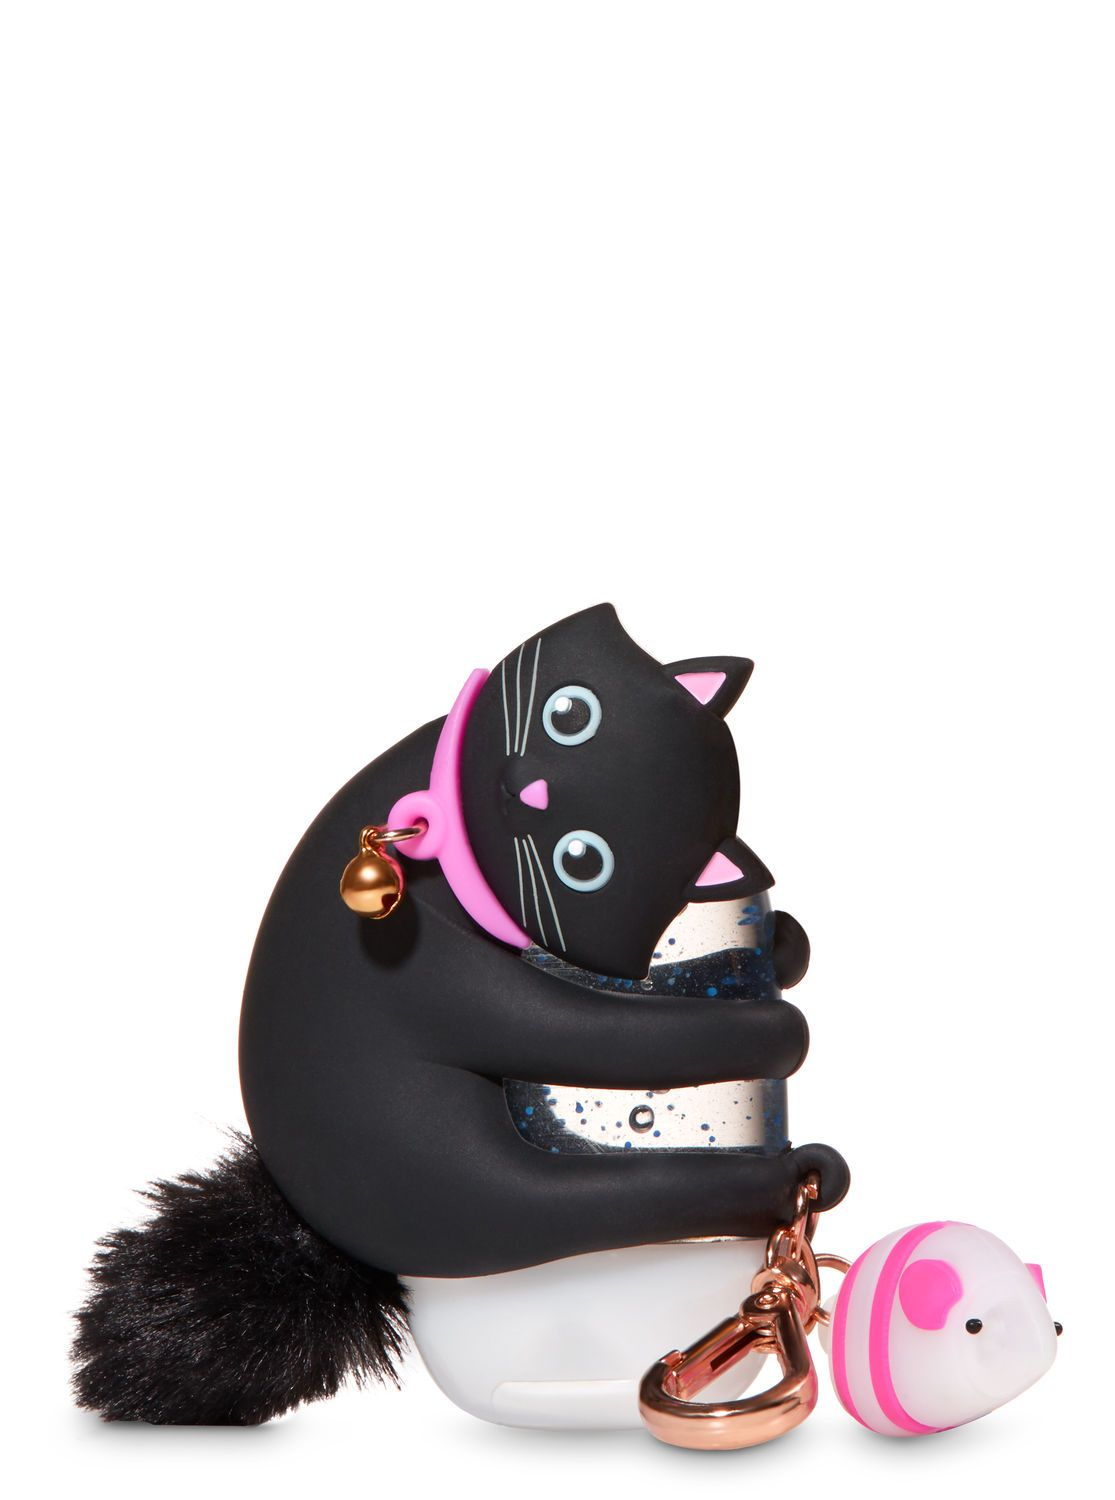 Jasper The Cat Light Up Pocketbac Holder By Bath Body Works